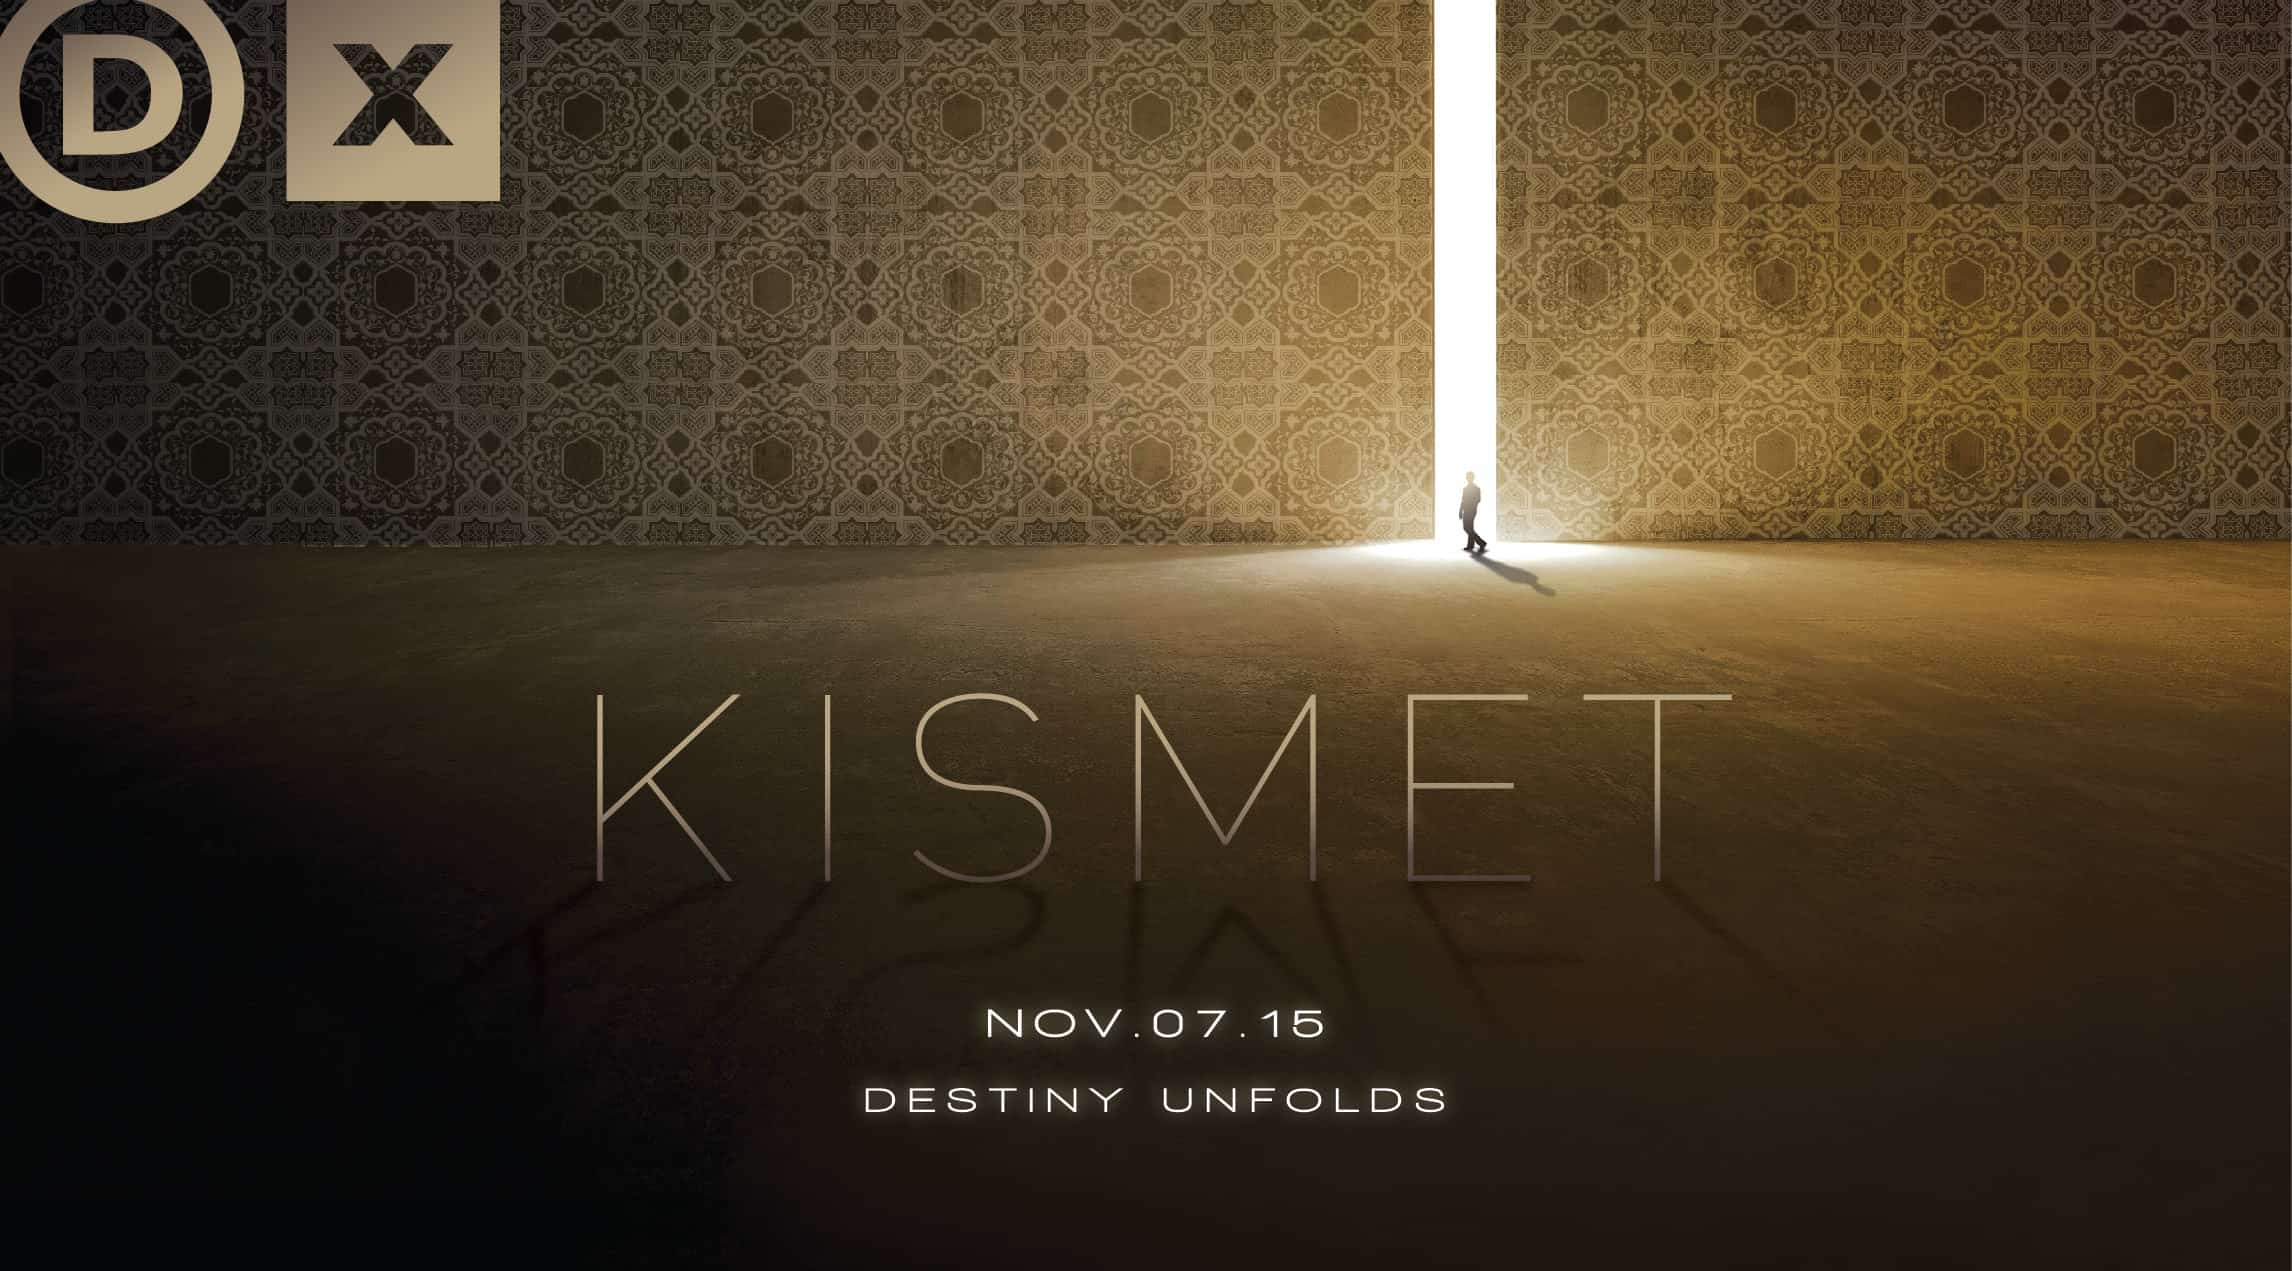 Contest: Win tickets to DX Intersection KISMET at The Design Exchange